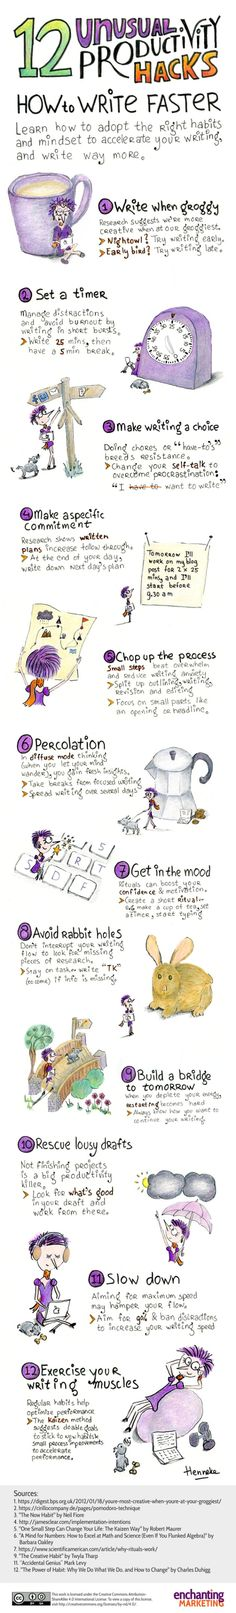 What Are 12 Tips To Accelerate Your Creative And Writing Productivity? #infographic EnchantingMarketing I look 4Ward to your feedback. Keep Digging for Worms! DR4WARD enjoys helping connect students and pros to learn about all forms of communication and creativity. He talks about, creates, and curates content on: Digital, Marketing, Advertising, Public Relations, Social Media, Journalism, Higher Ed, Innovation, Creativity, and Design. Find DR4WARD resources on Pinterest: http://pint...